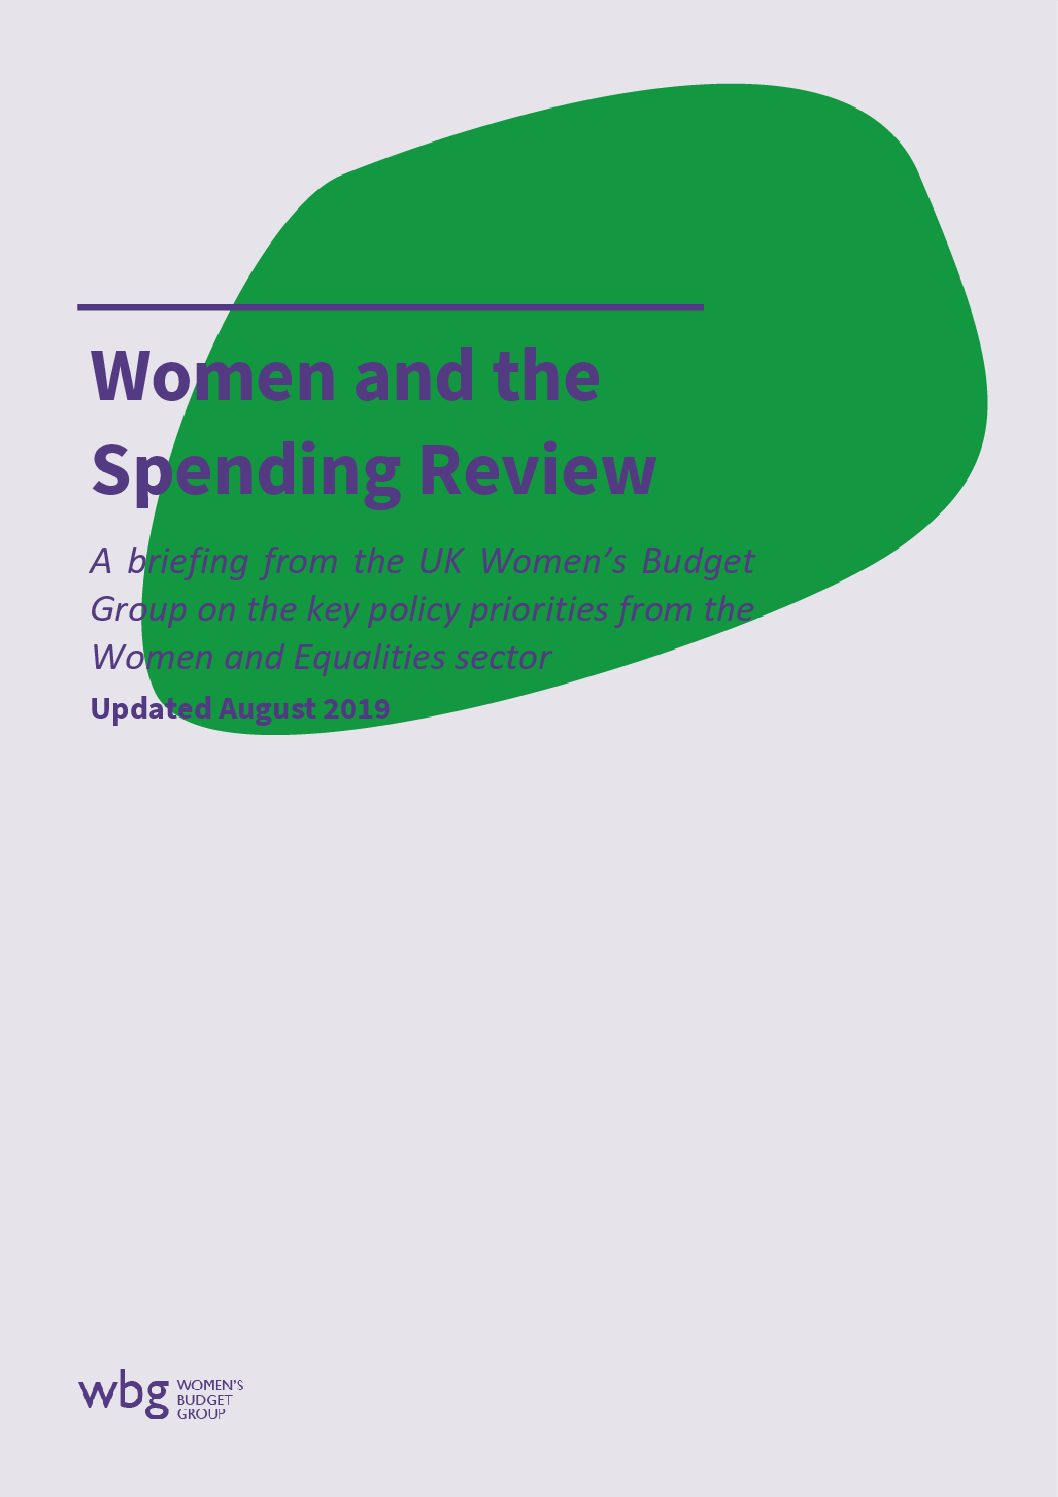 Women and the Spending Review